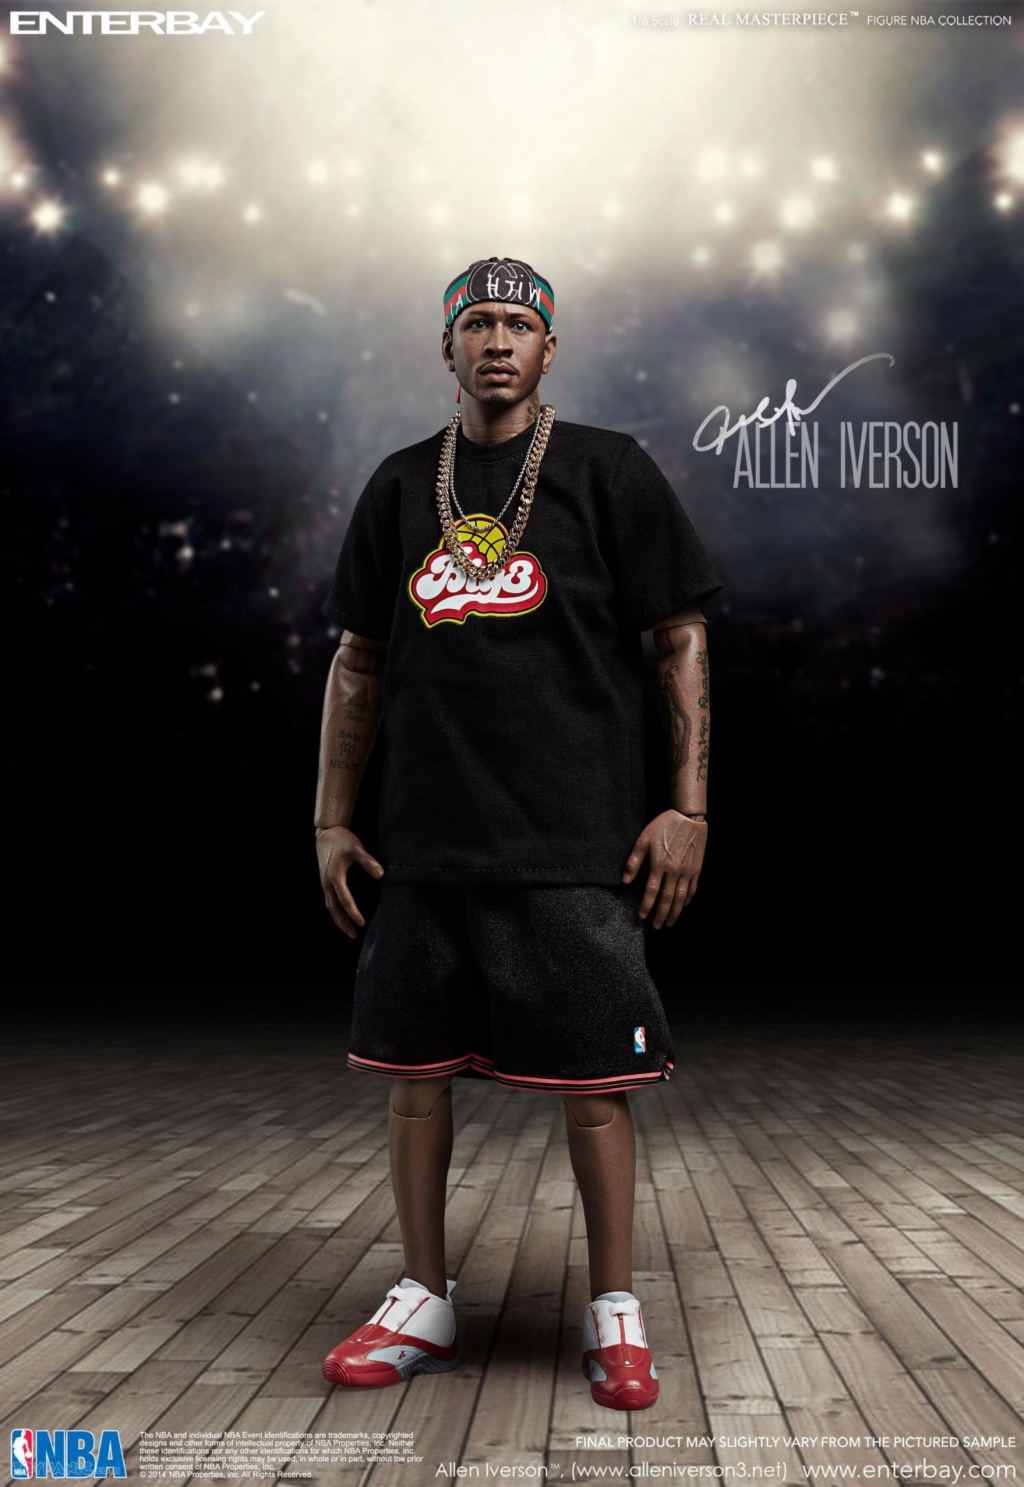 athlete - NEW PRODUCT: Enterbay: 1/6 Real Masterpiece NBA - Allen Iverson Action Figure (New Upgraded Re-edition) 52520223